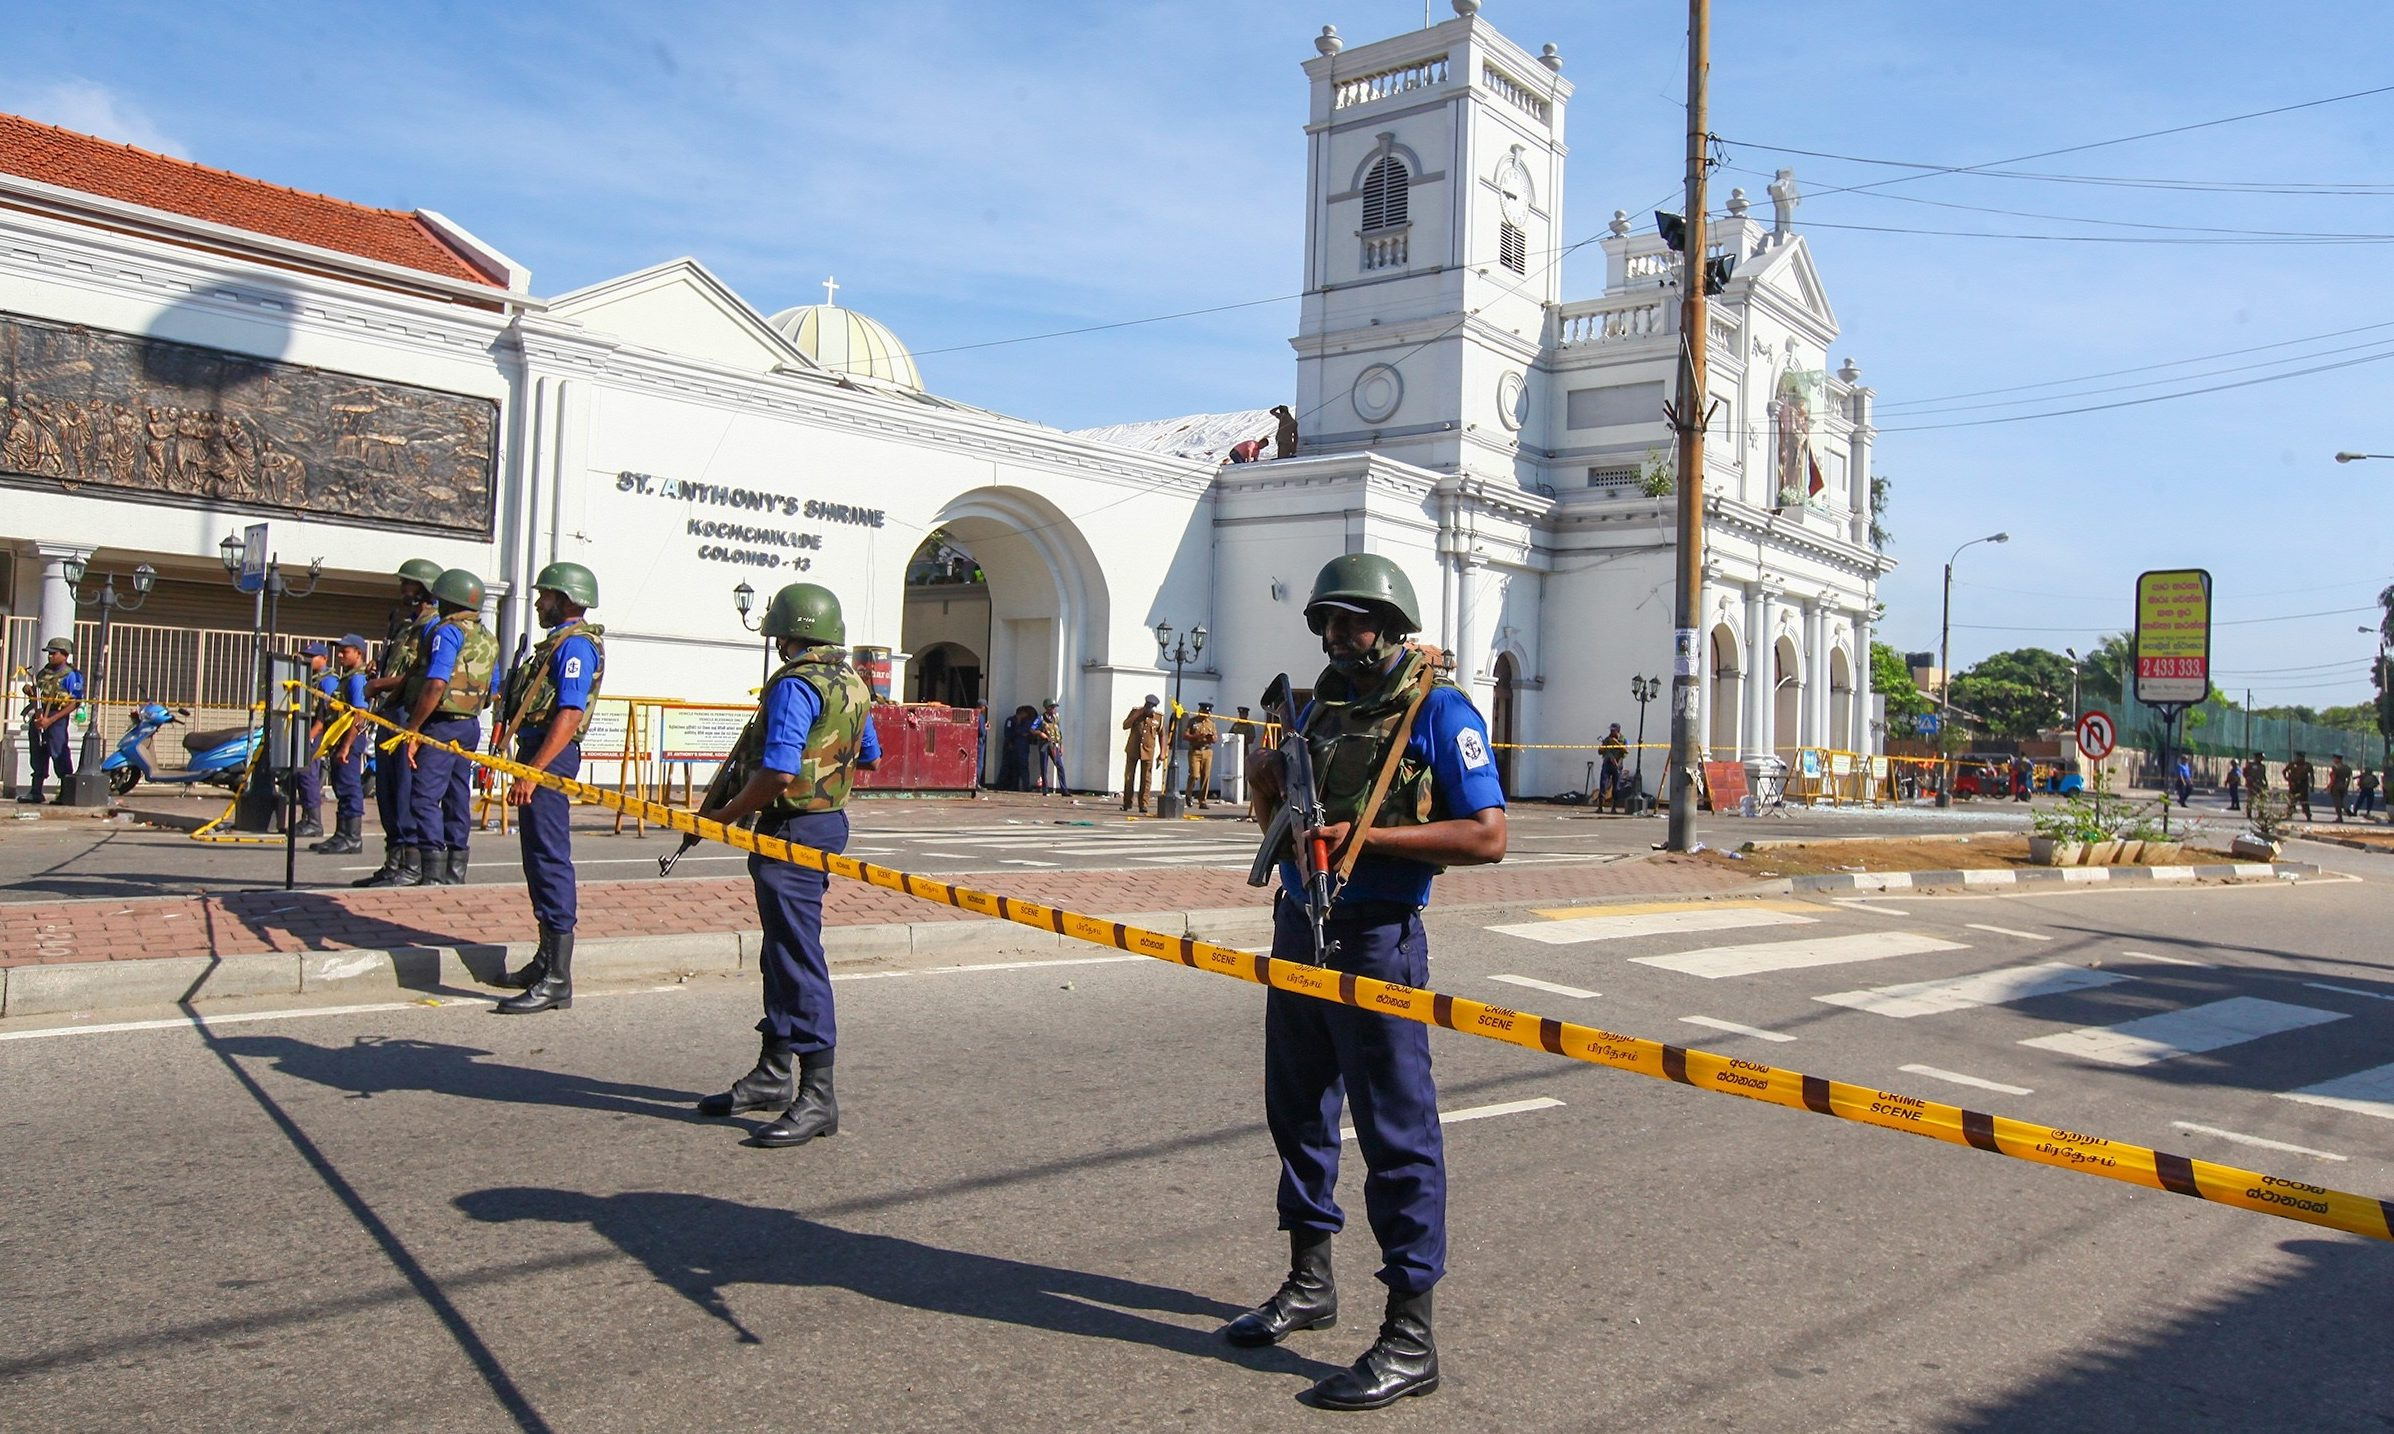 Sri Lankan soldiers stand guard in front of the St. Anthony's Shrine a day after multiple explosions targeting churches and hotels across Sri Lanka, in Colombo, Sri Lanka.